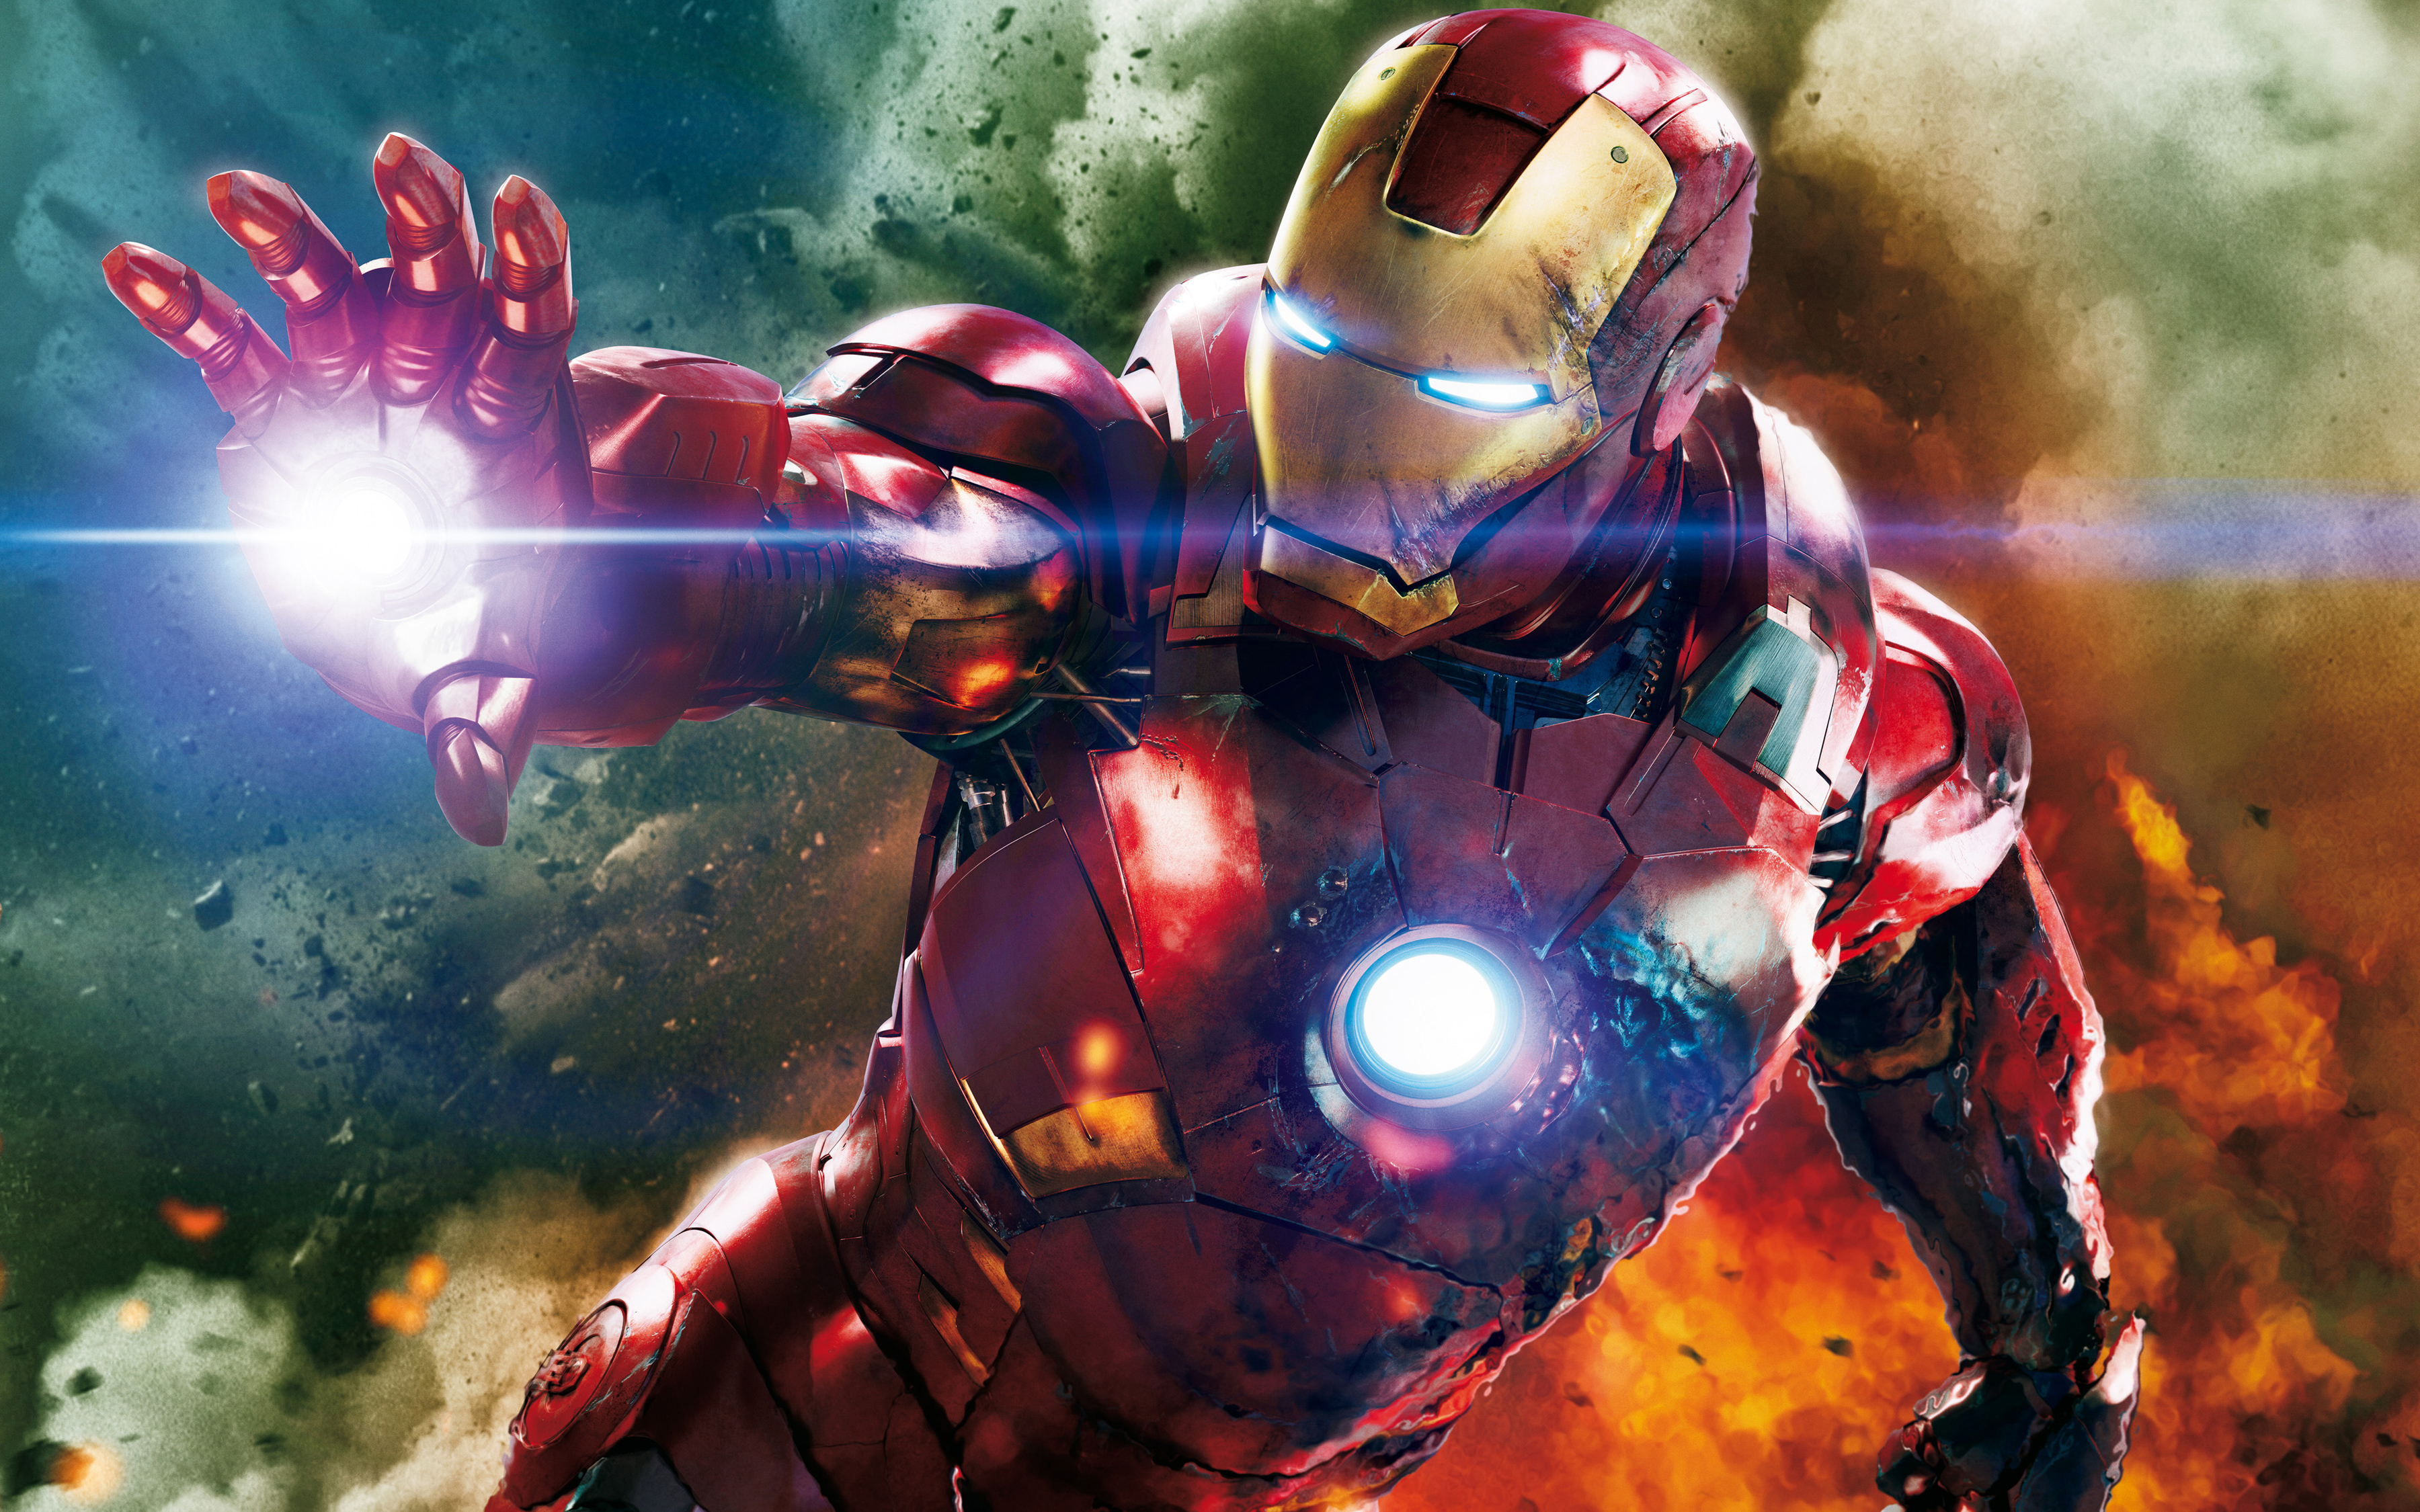 The Avengers Iron Man wallpaper